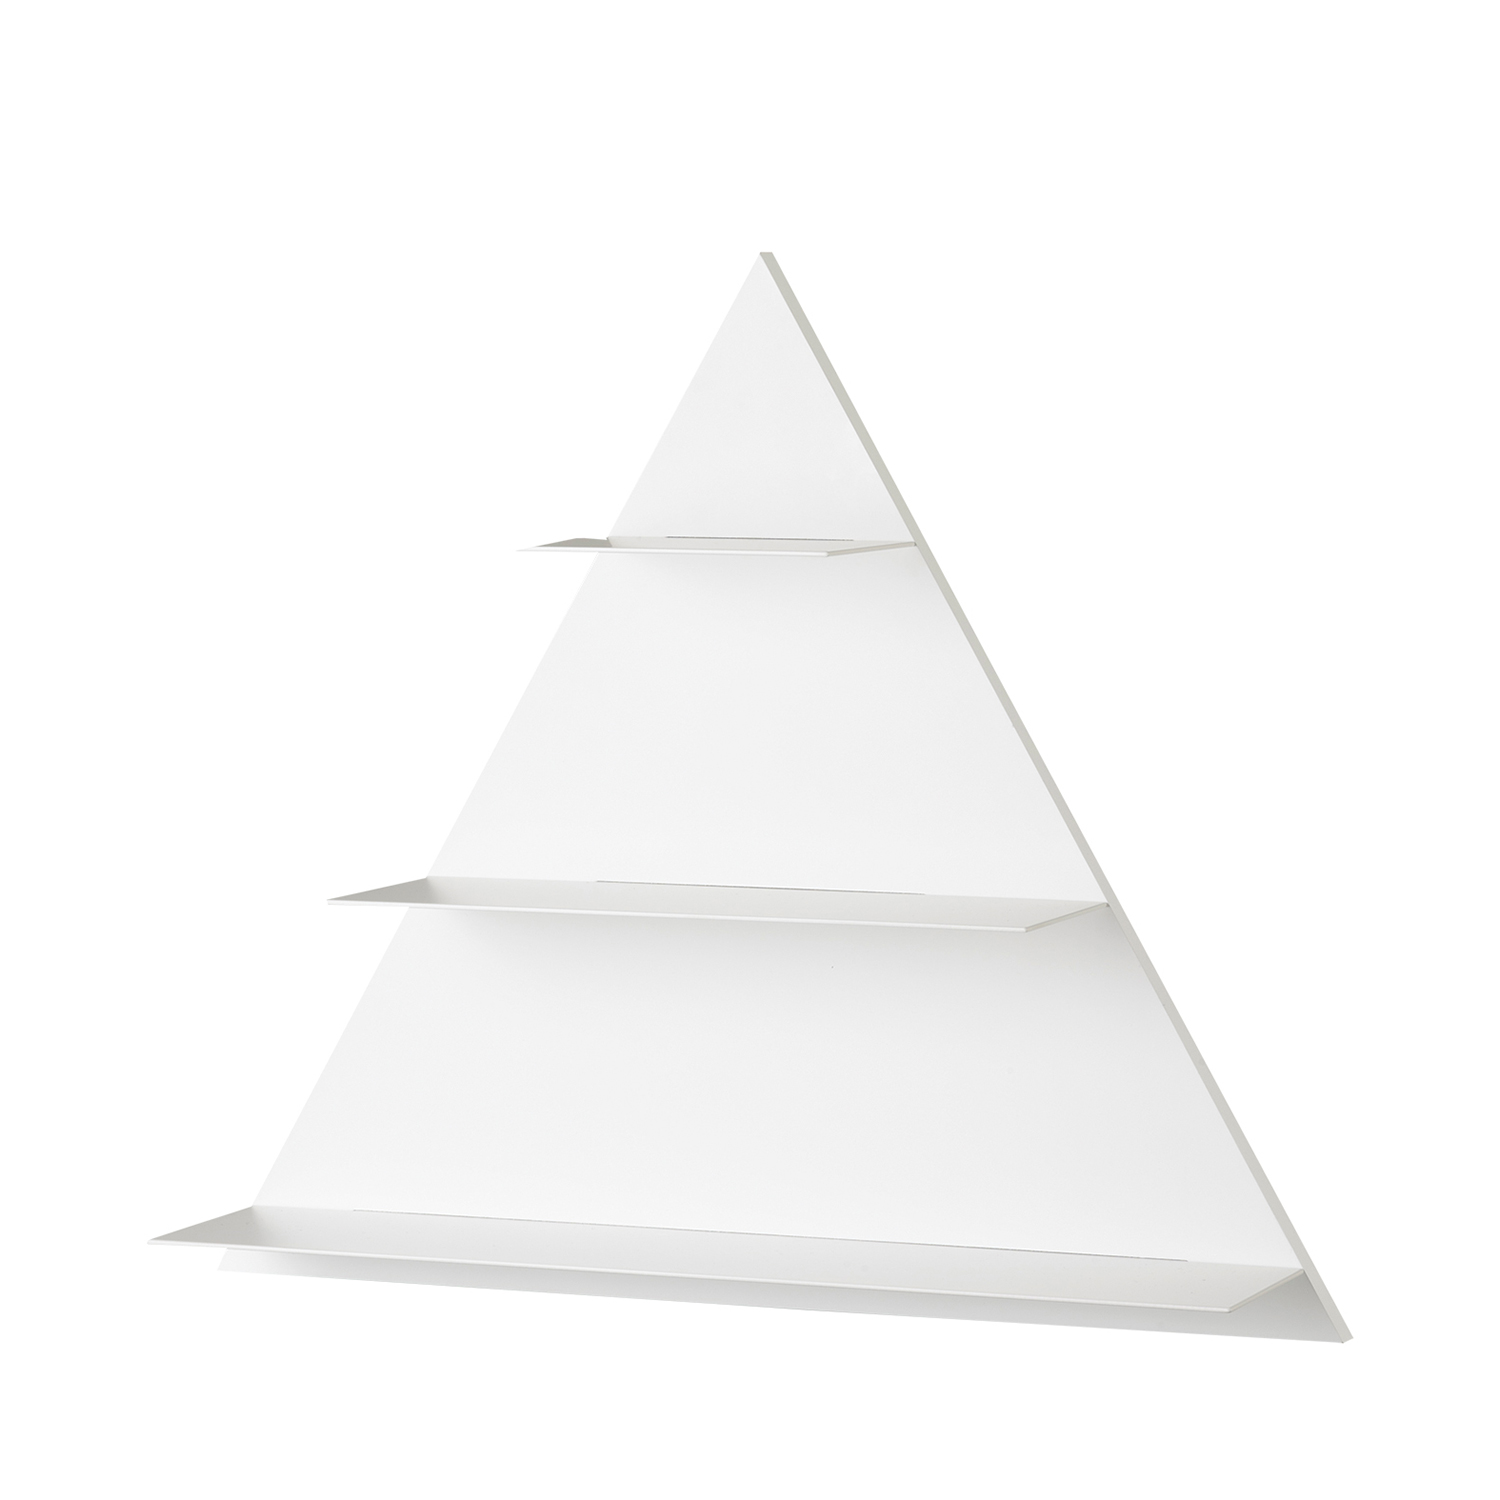 Paper Shelf Triangular hylla, vit